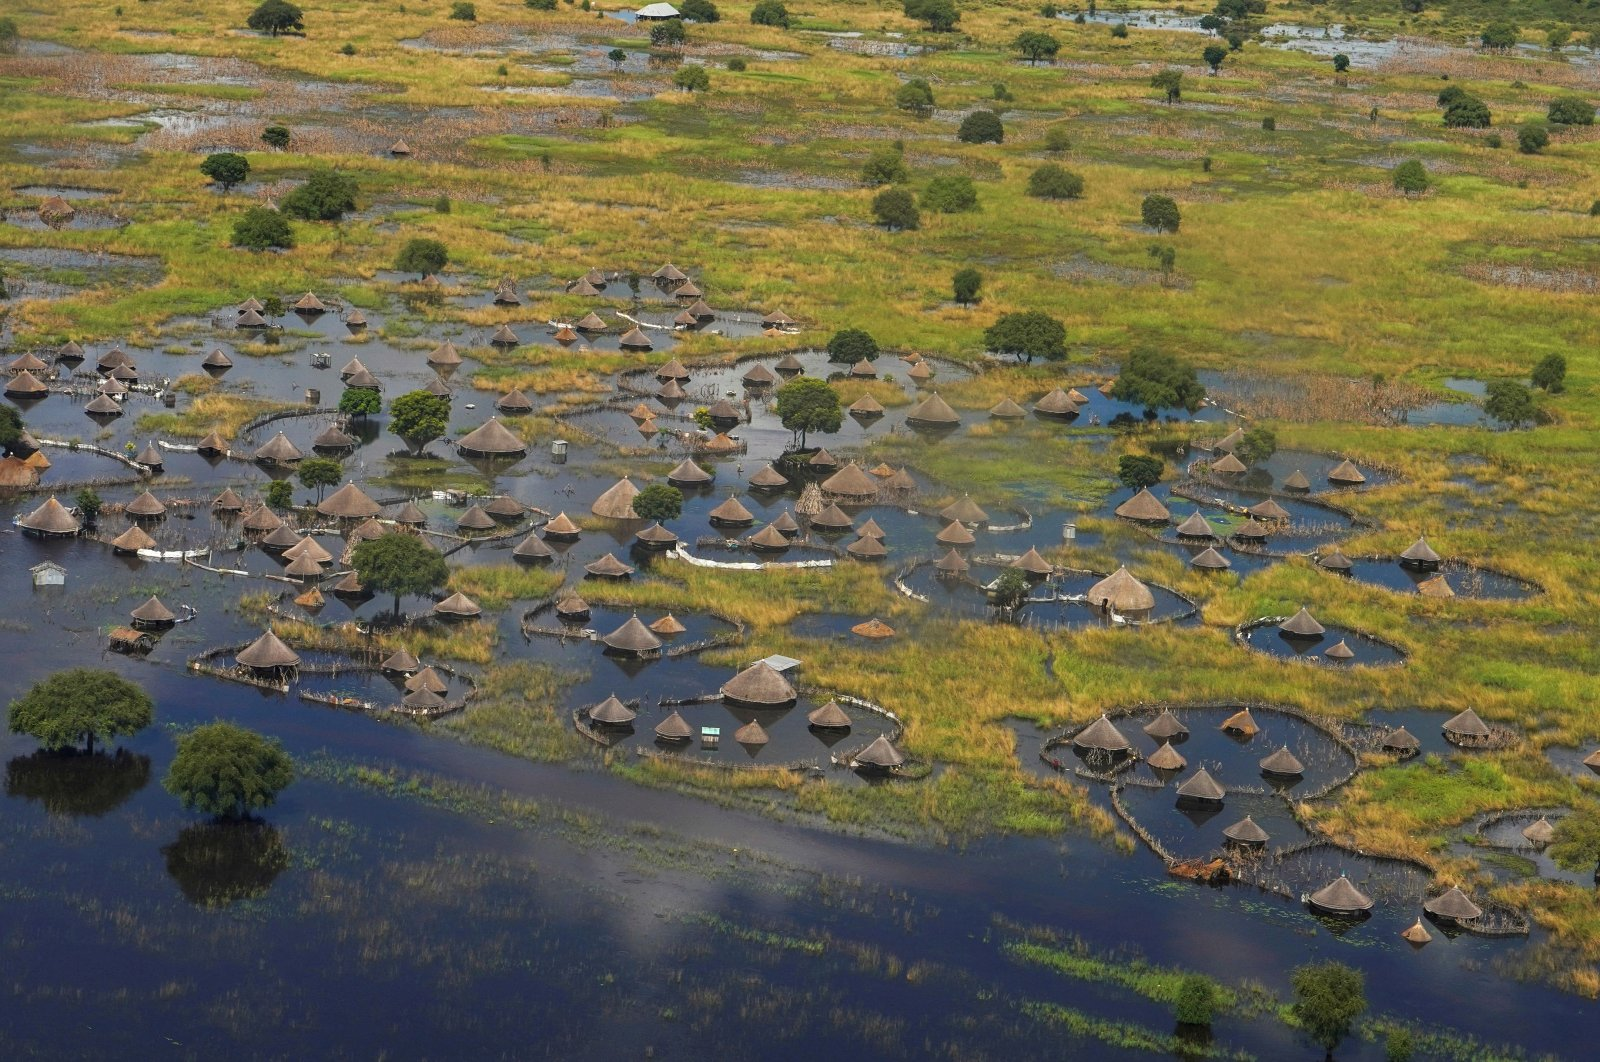 An aerial view shows flooded homes within a village after the Nile broke the dikes in Jonglei State, South Sudan, Oct. 5, 2020. (REUTERS Photo)